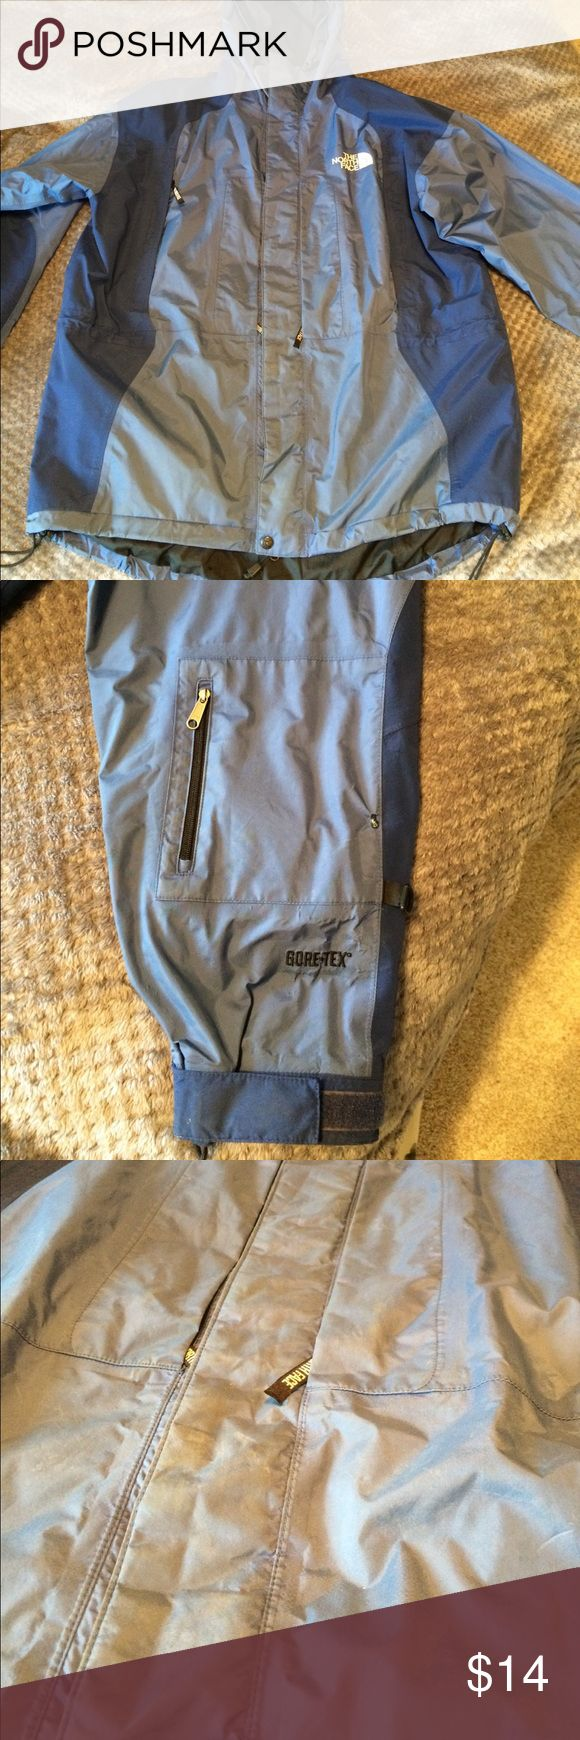 North face rain coat Men's raincoat. Used .. needs a good wash but otherwise in good condition. Doesn't fit. North Face Jackets & Coats Raincoats